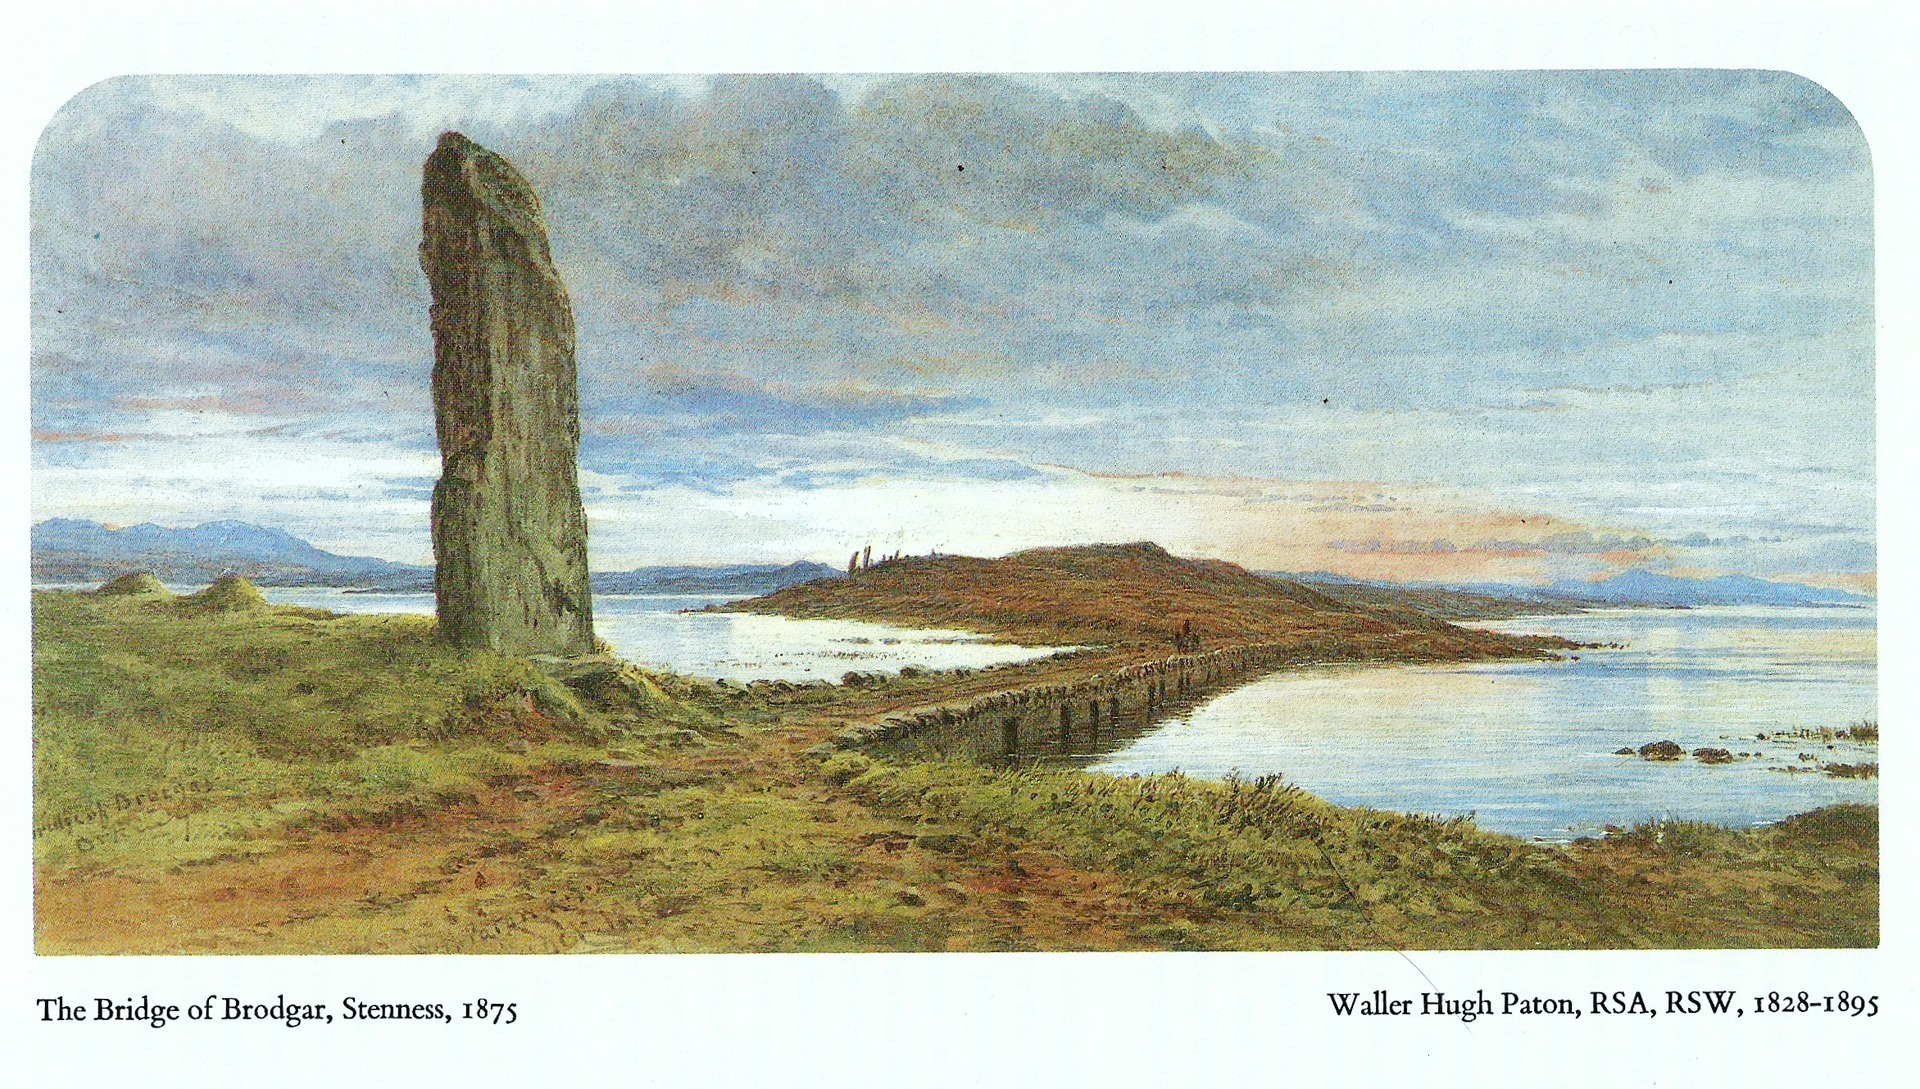 The Bridge of Brodgar